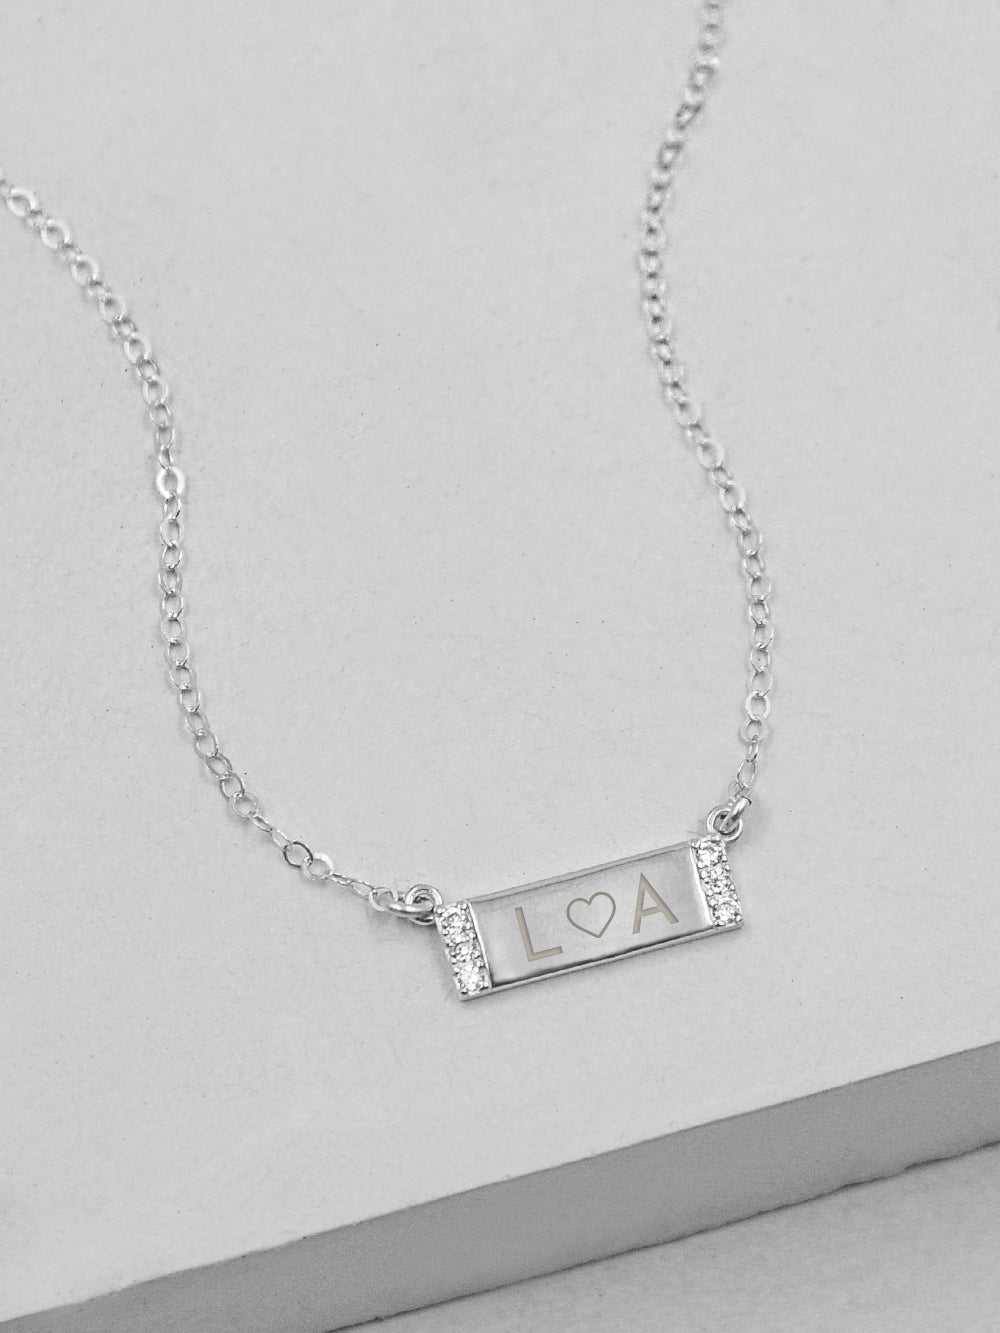 Silver Sparkle Mini CZ Bar Engraved Necklace by The Faint Hearted Jewelry